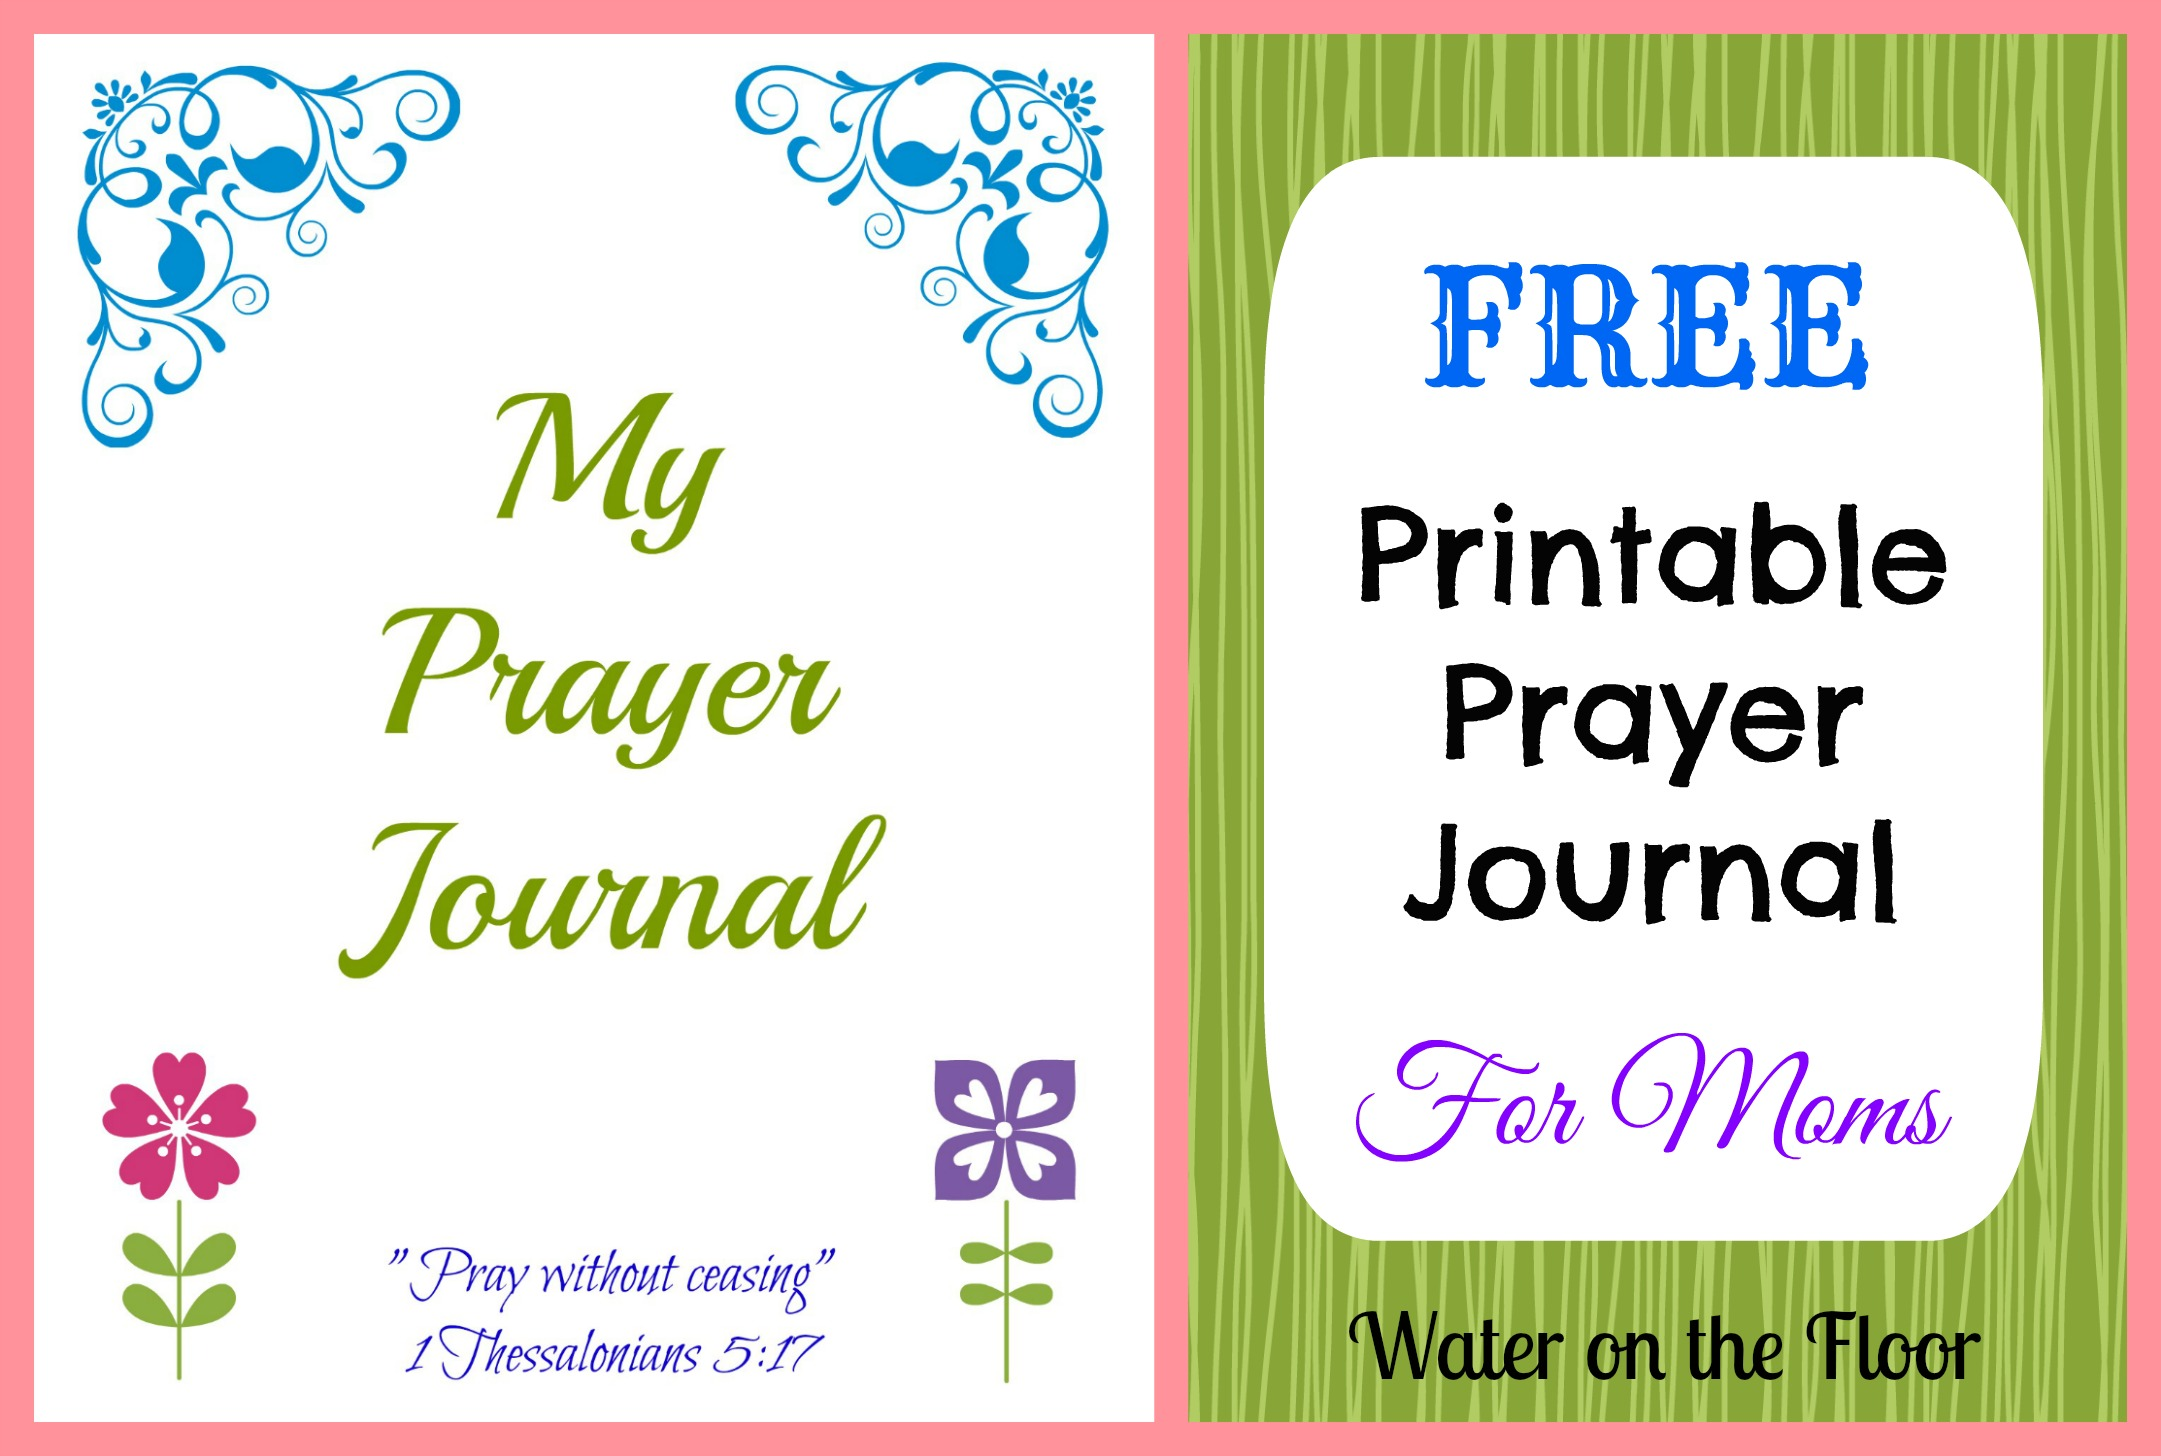 7 Images of Free Printable Prayer Journal